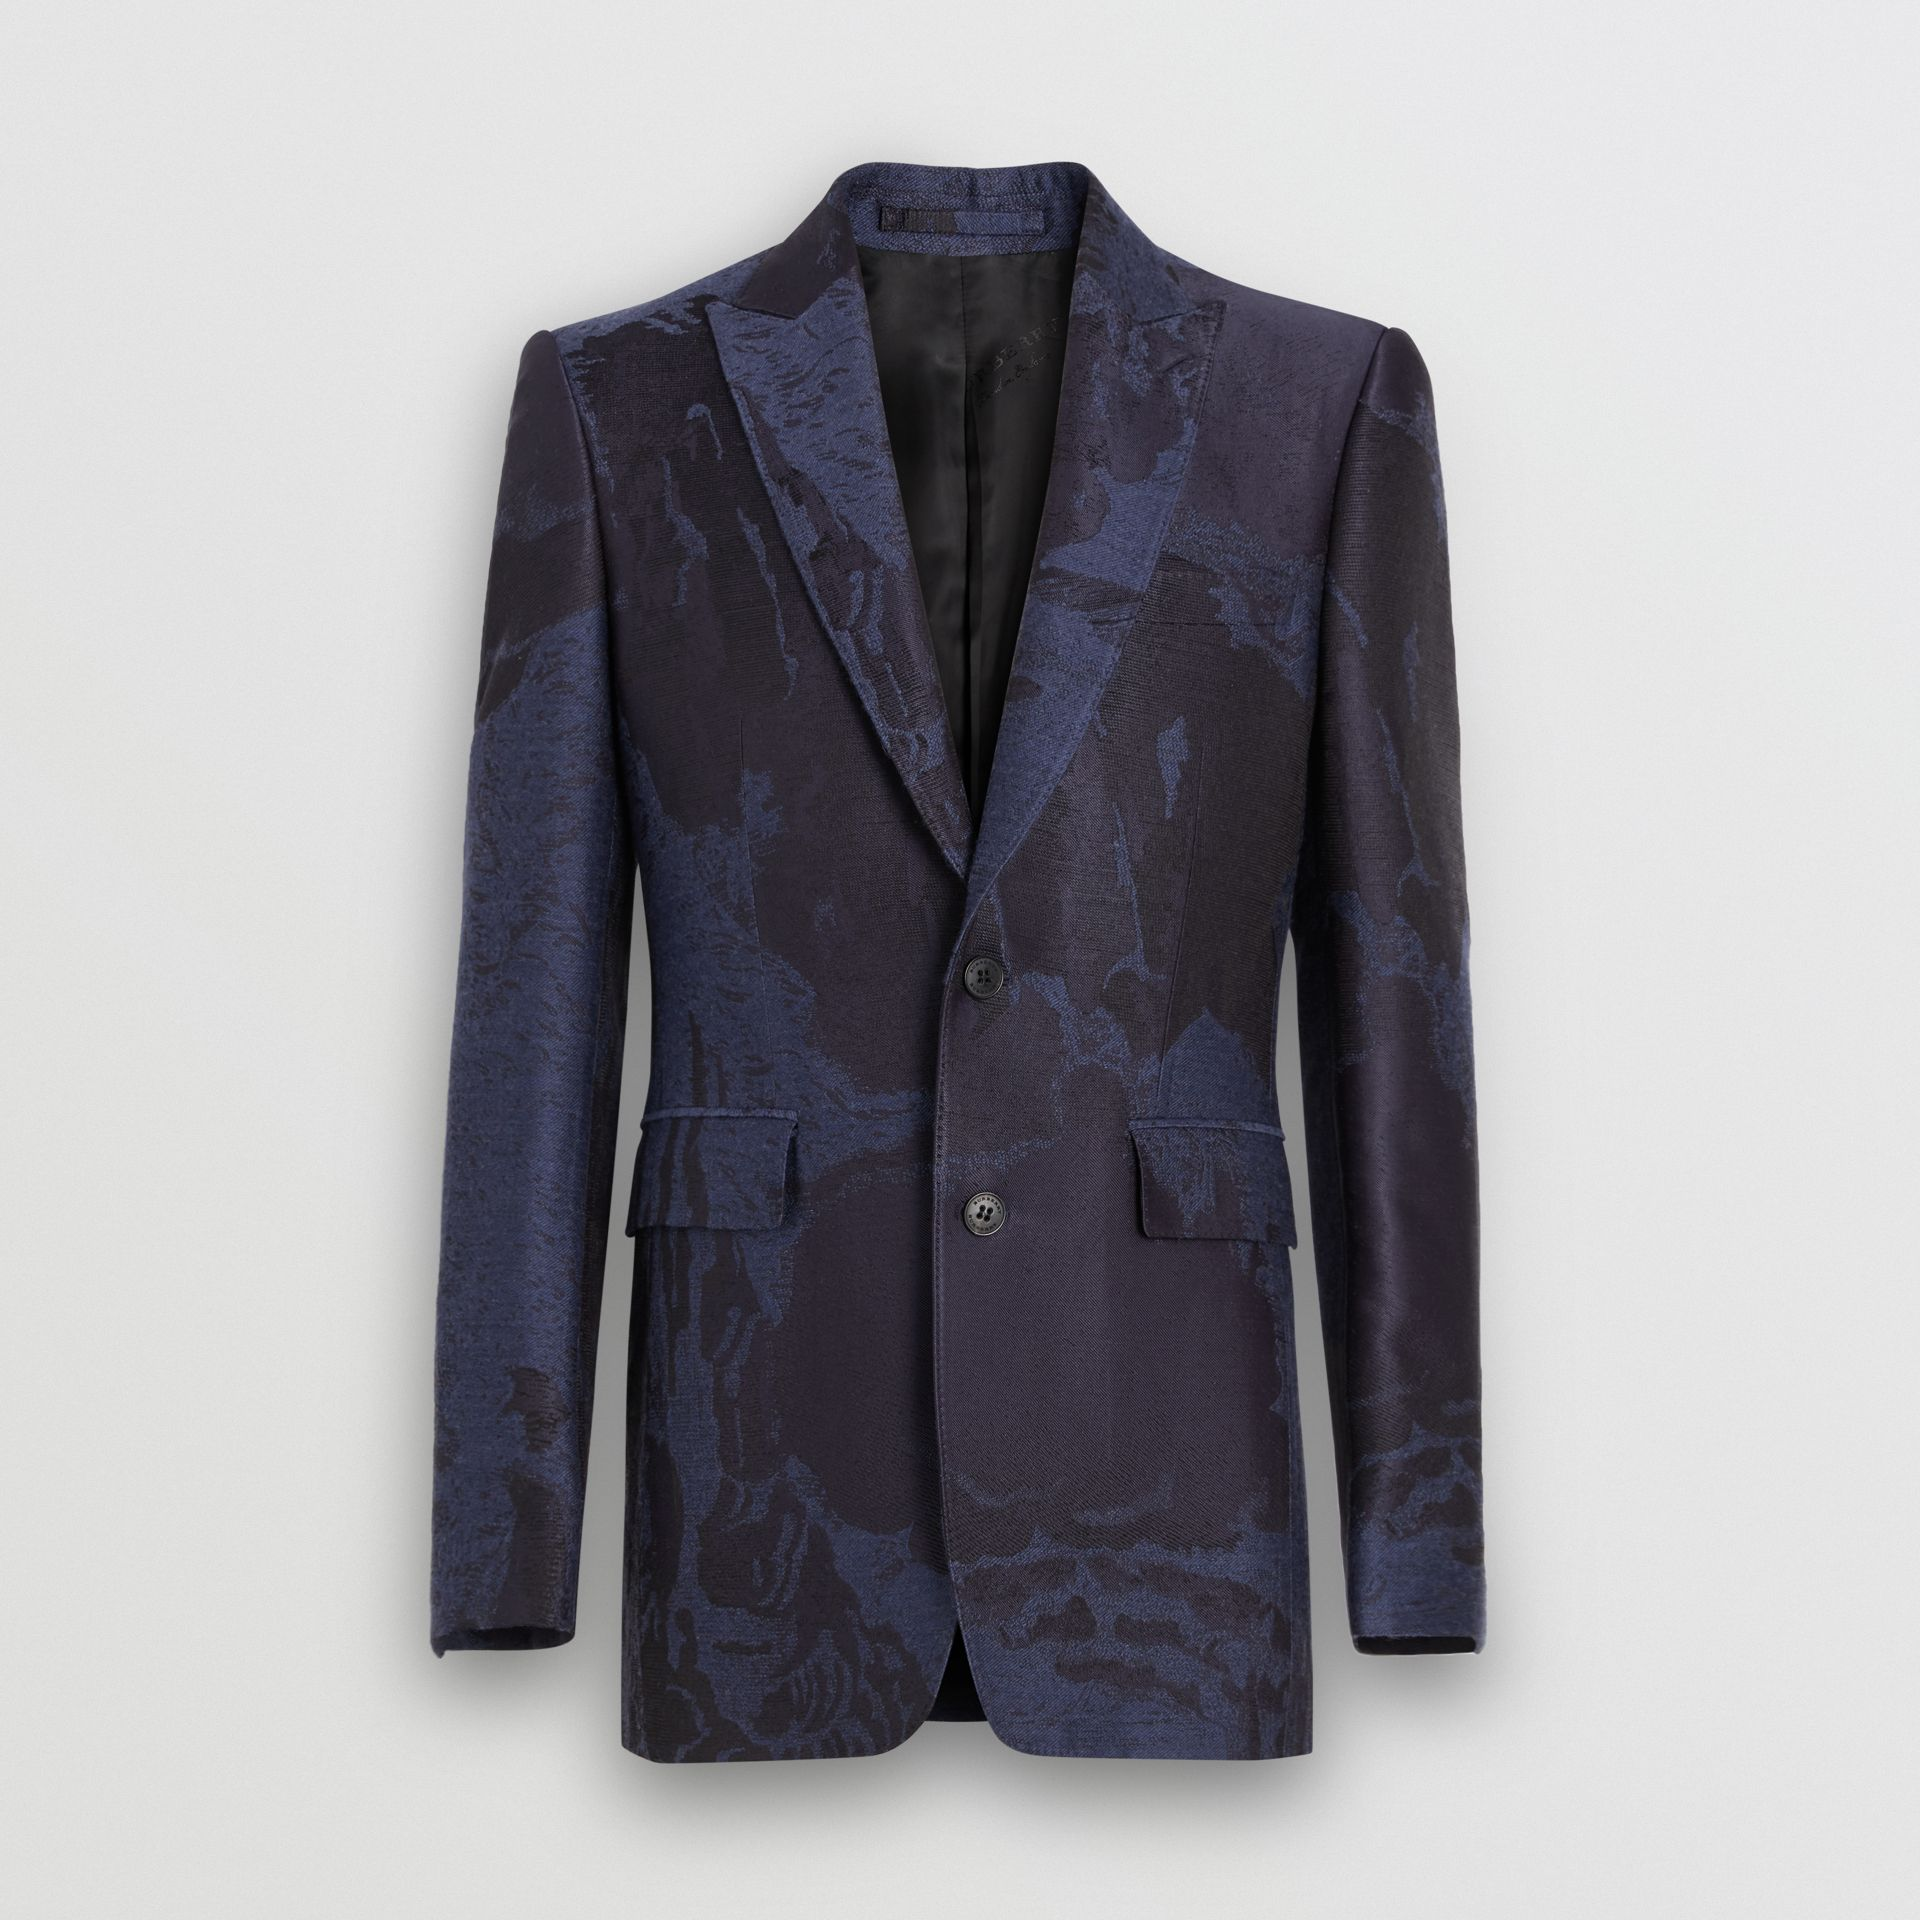 Classic Fit Dreamscape Wool Blend Tailored Jacket in Midnight Blue - Men | Burberry - gallery image 3